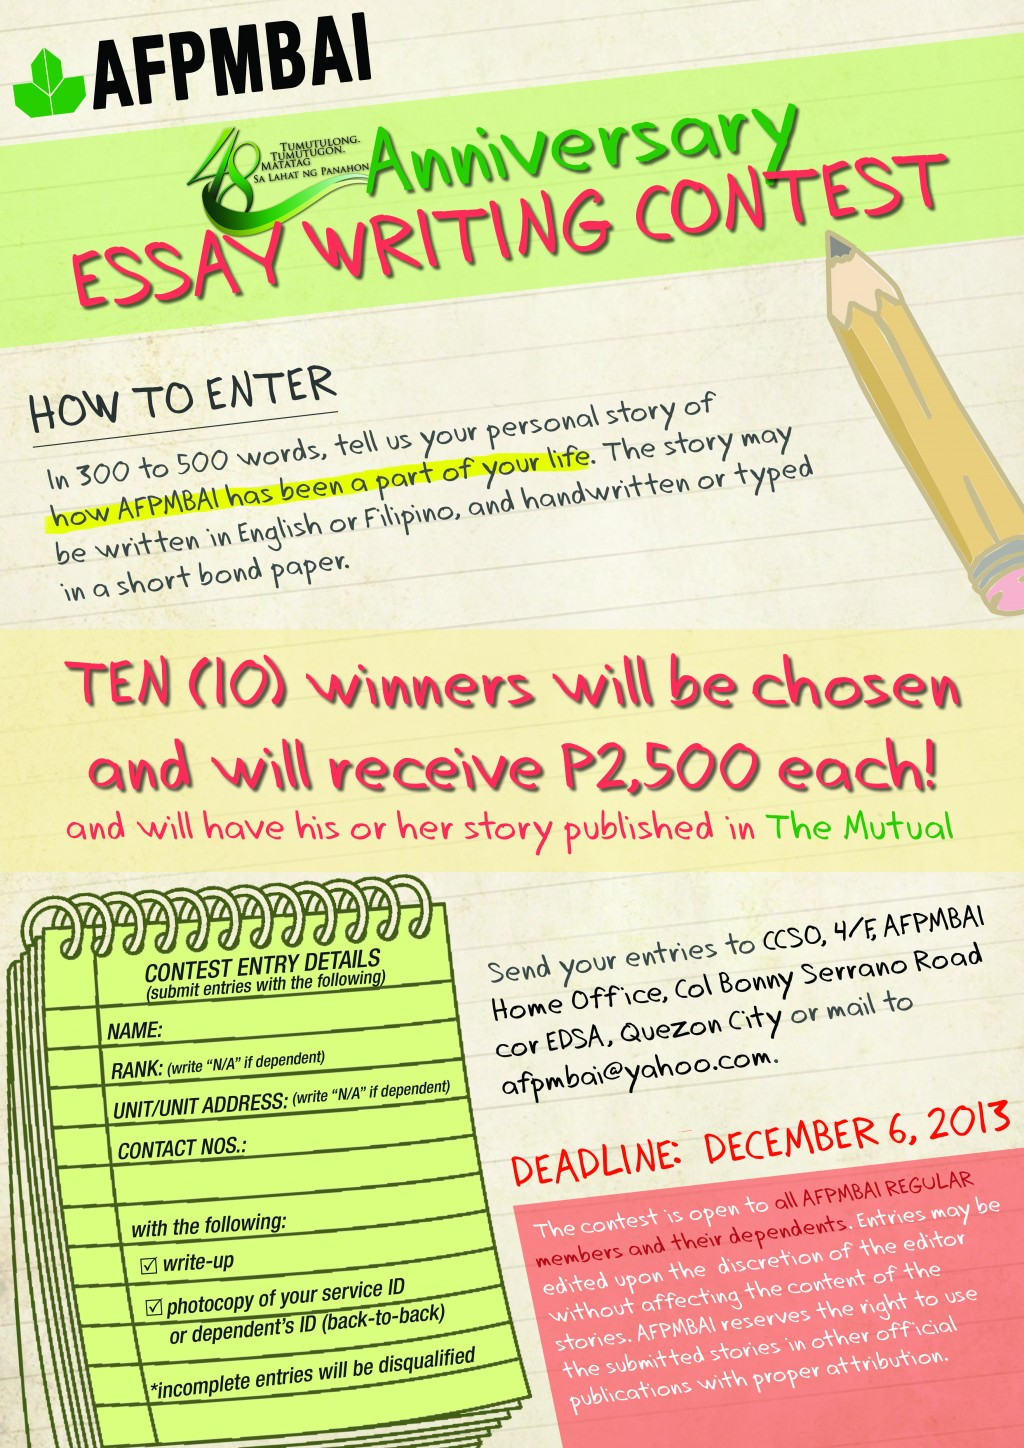 003 Essay Example Writing Contest Competition Essays About For Nutrition Month P Objectives Rubrics Philippines Mechanics Criteria Tips Incredible College Students By Essayhub Sample Large